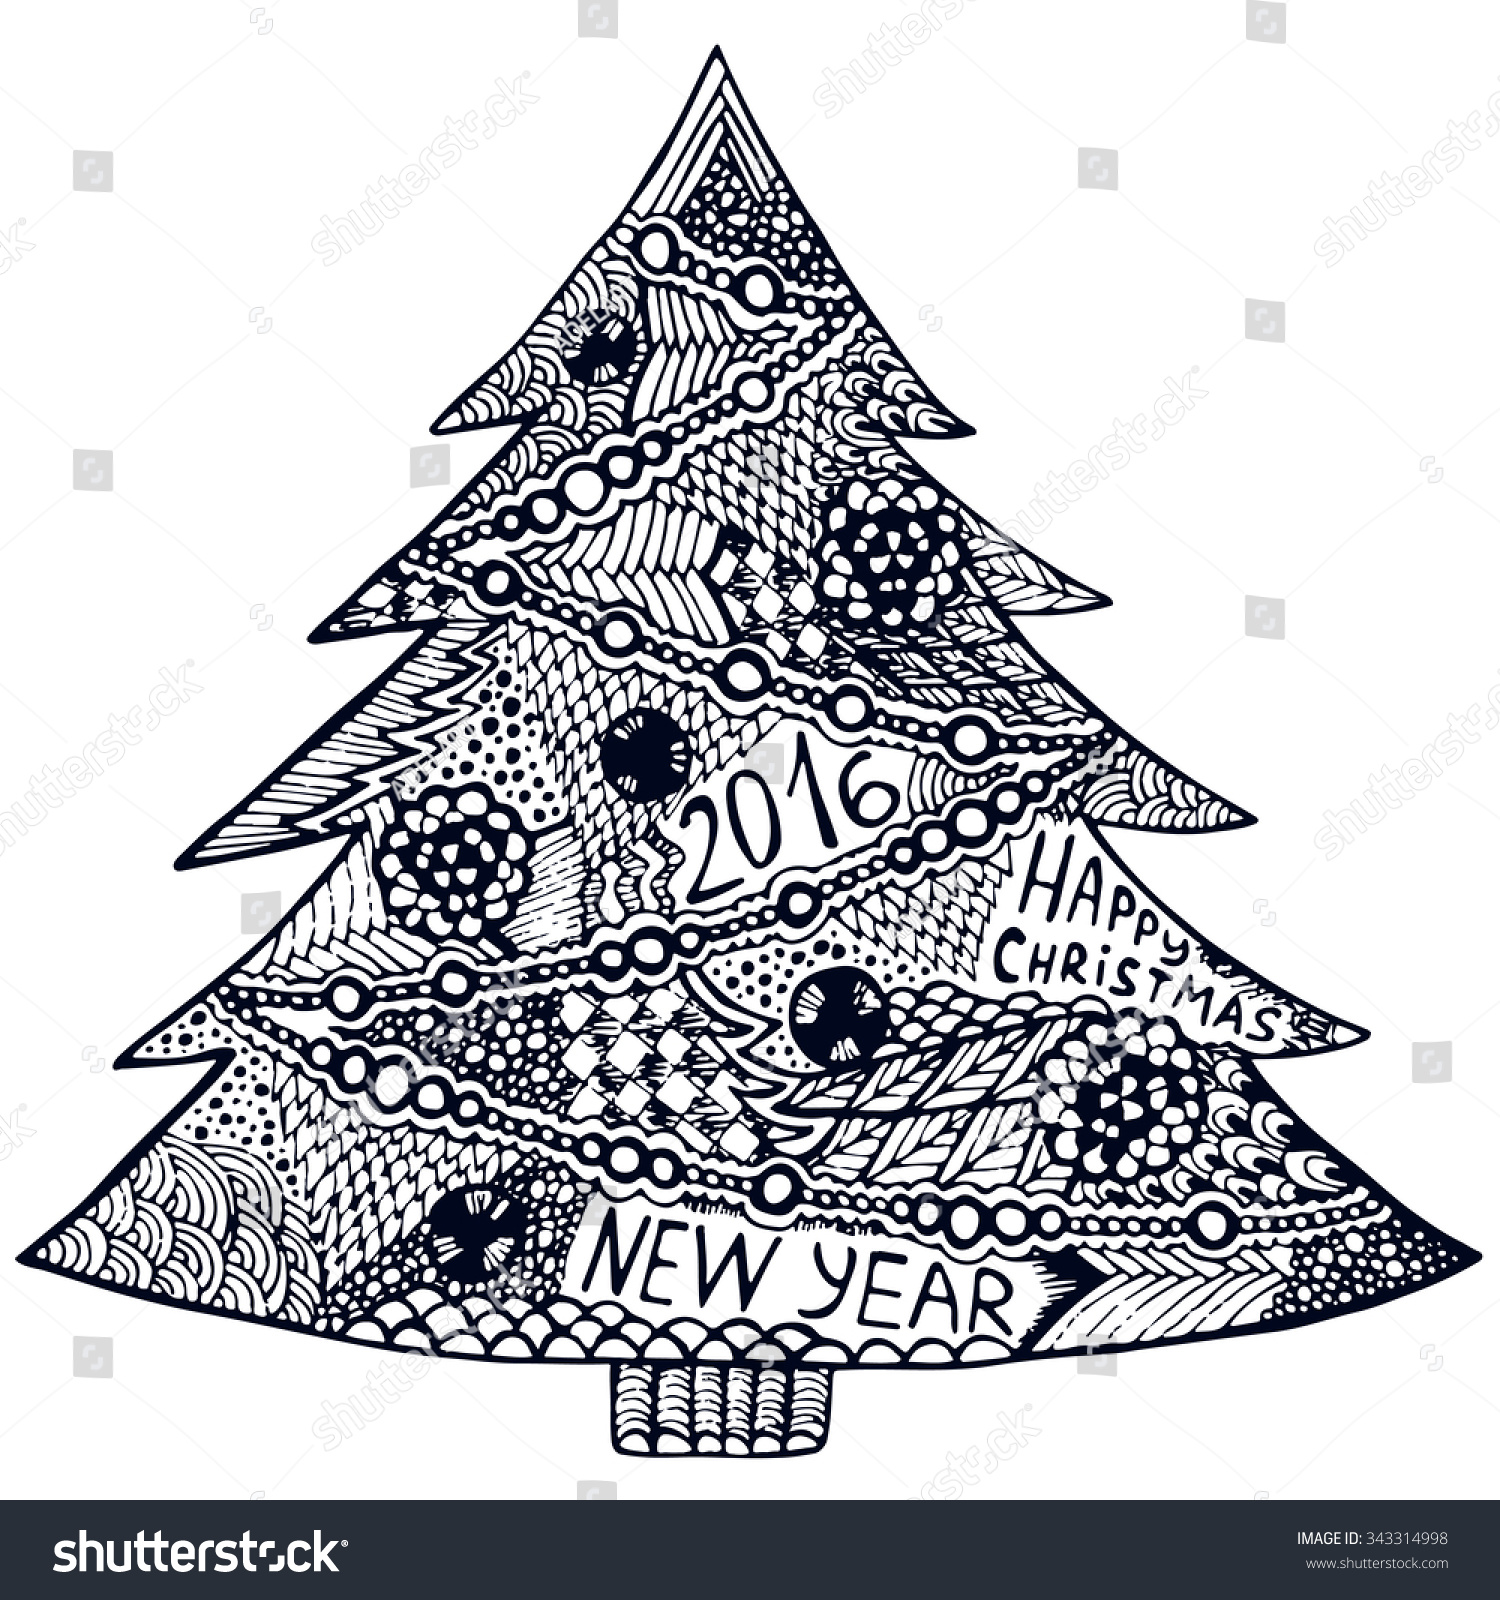 Christmas Trees Zentangle Elements Zentangle Christmas Stock Vector ...